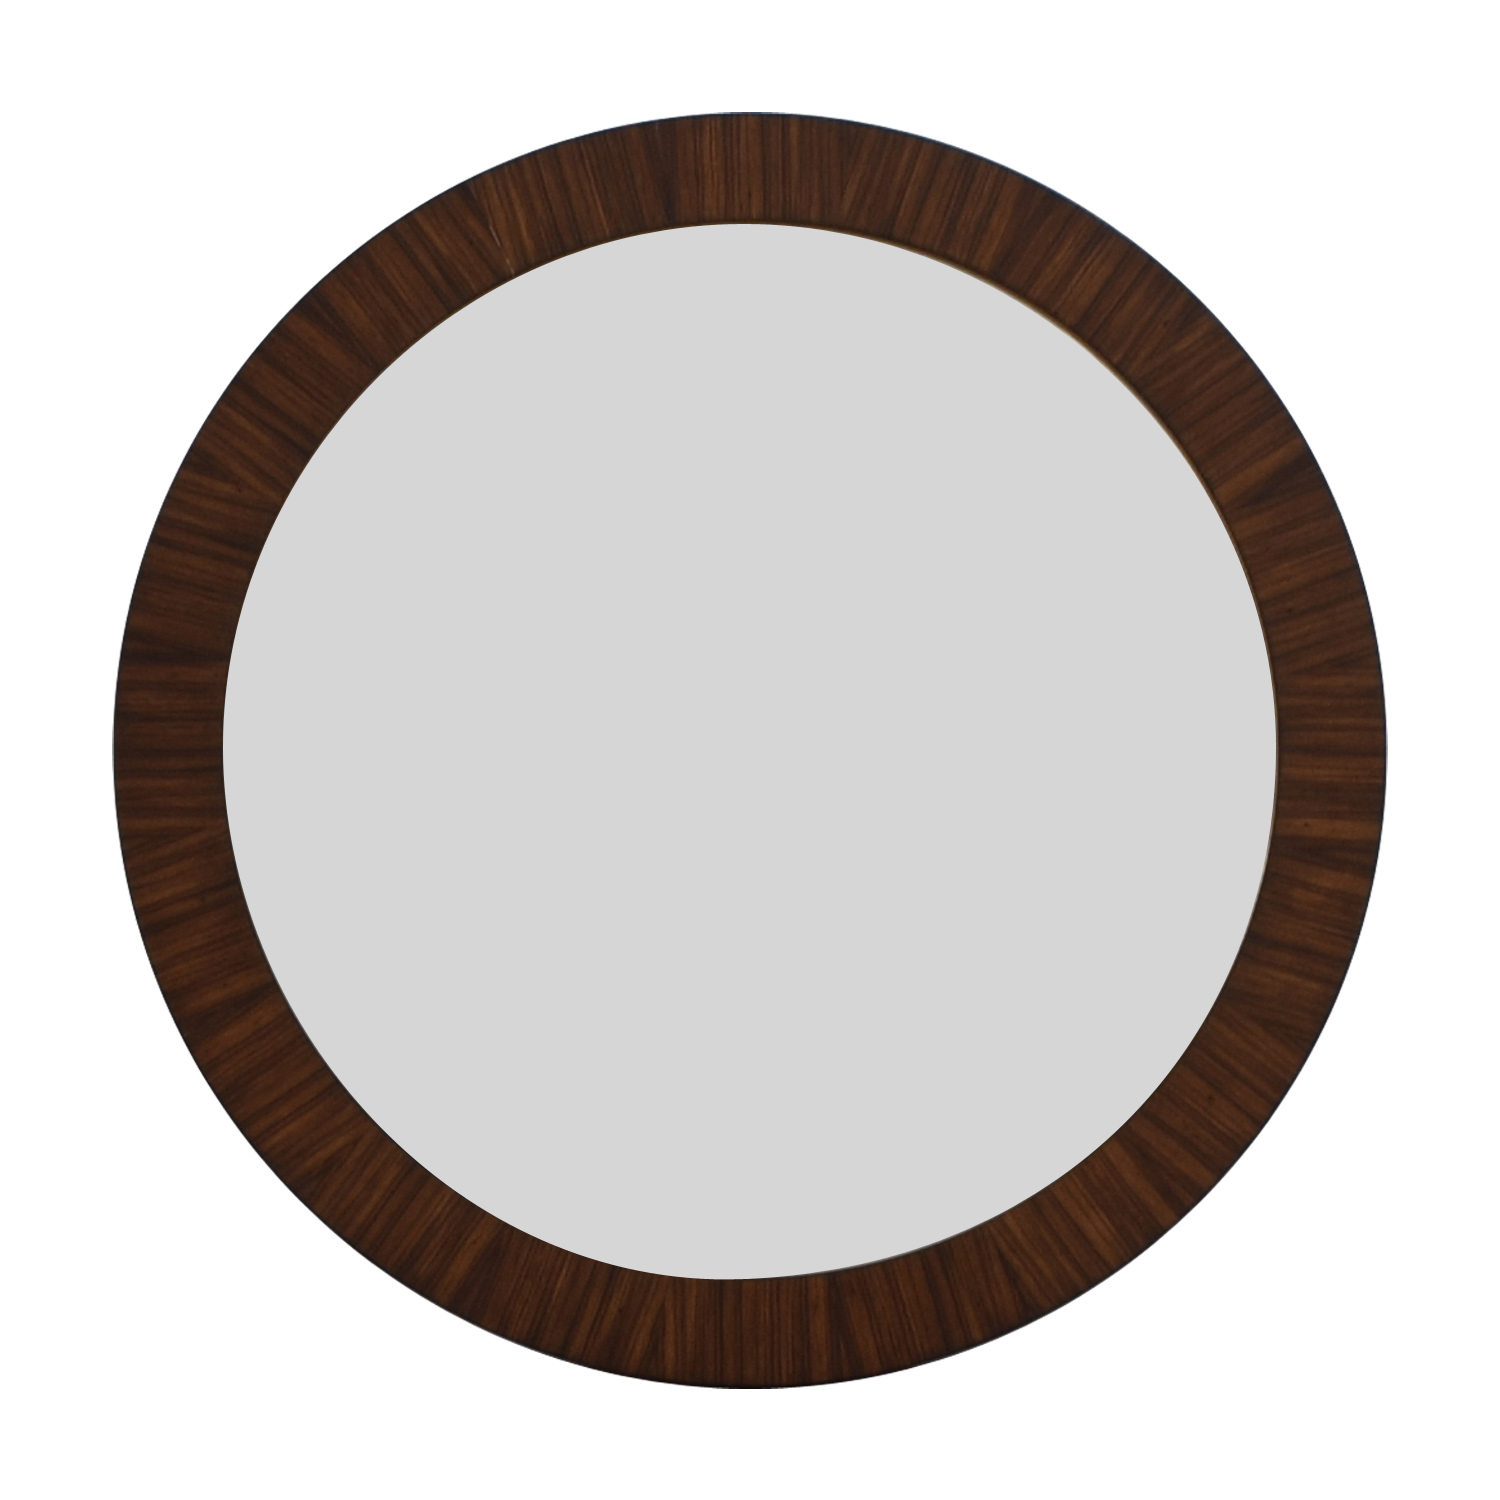 Uttermost Uttermost Wood Circular Wall Mirror price